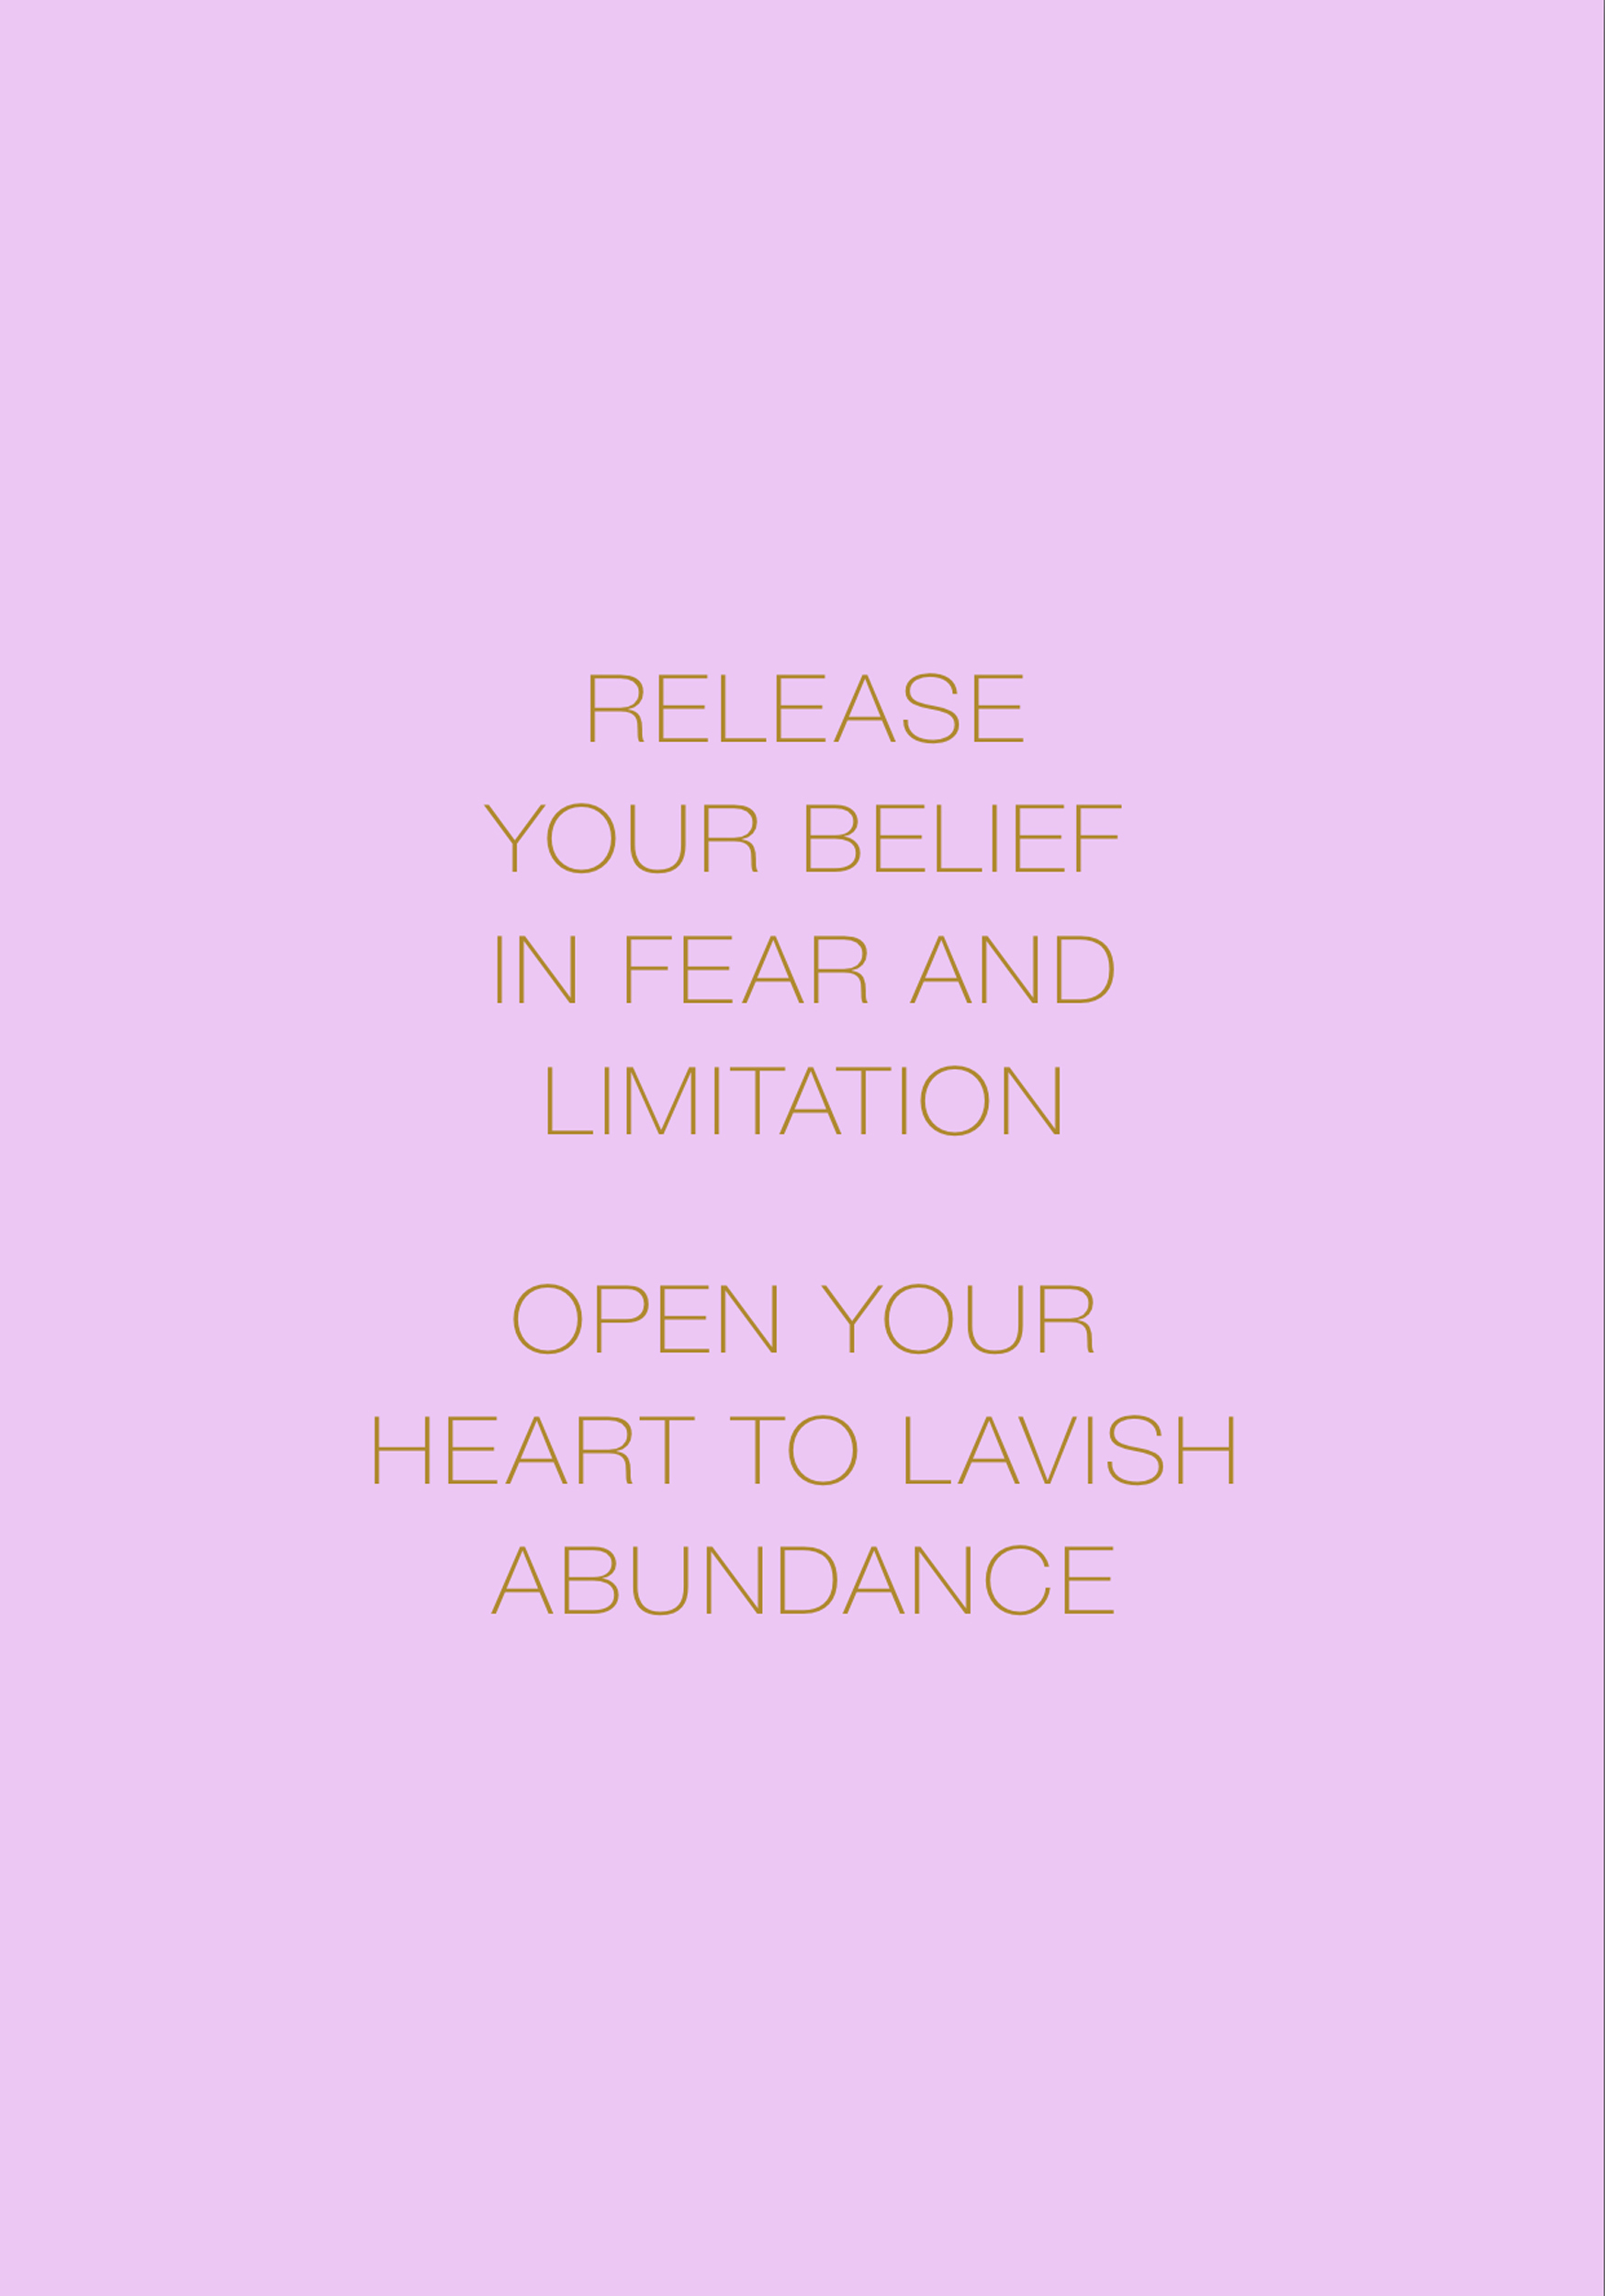 Abundance Mantra: Release Your Belief in Fear and Limitation, Open Your Heart to Lavish Abundance